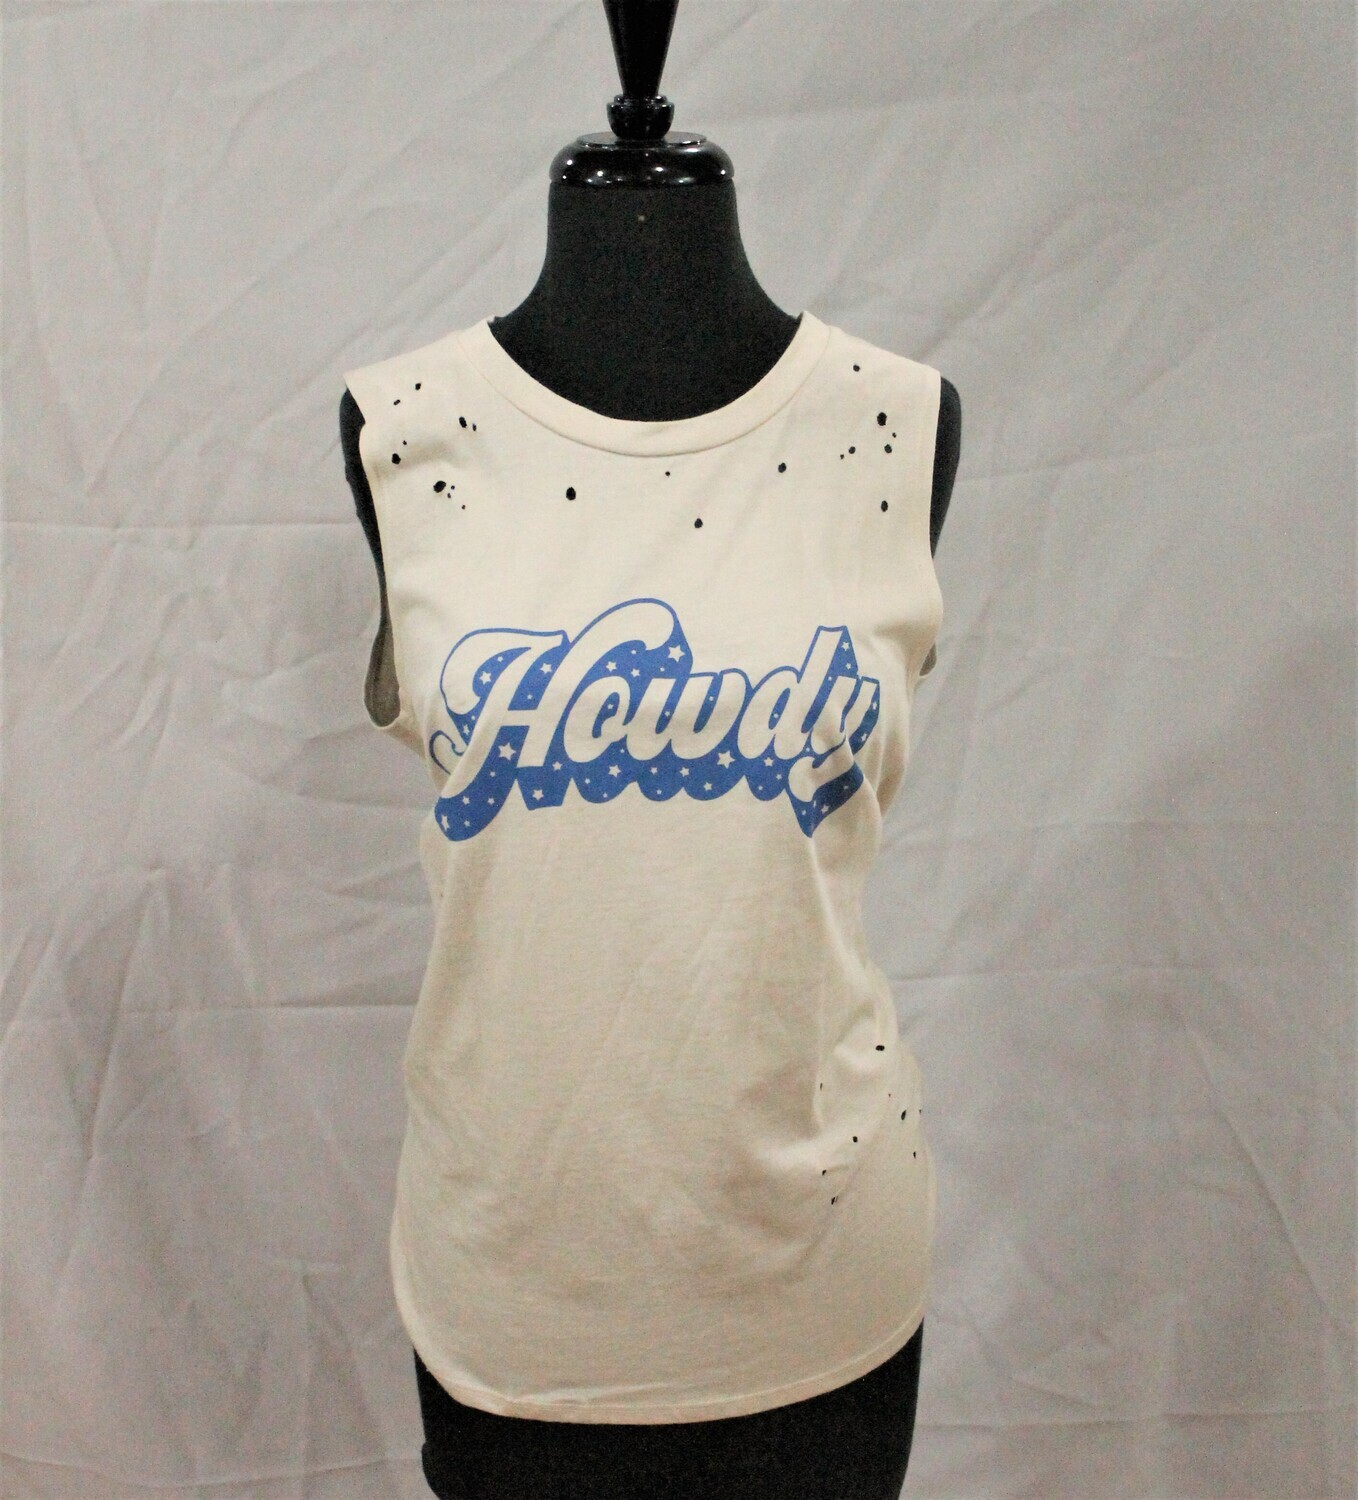 Refined Canvas F643-7799 Howdy Tee